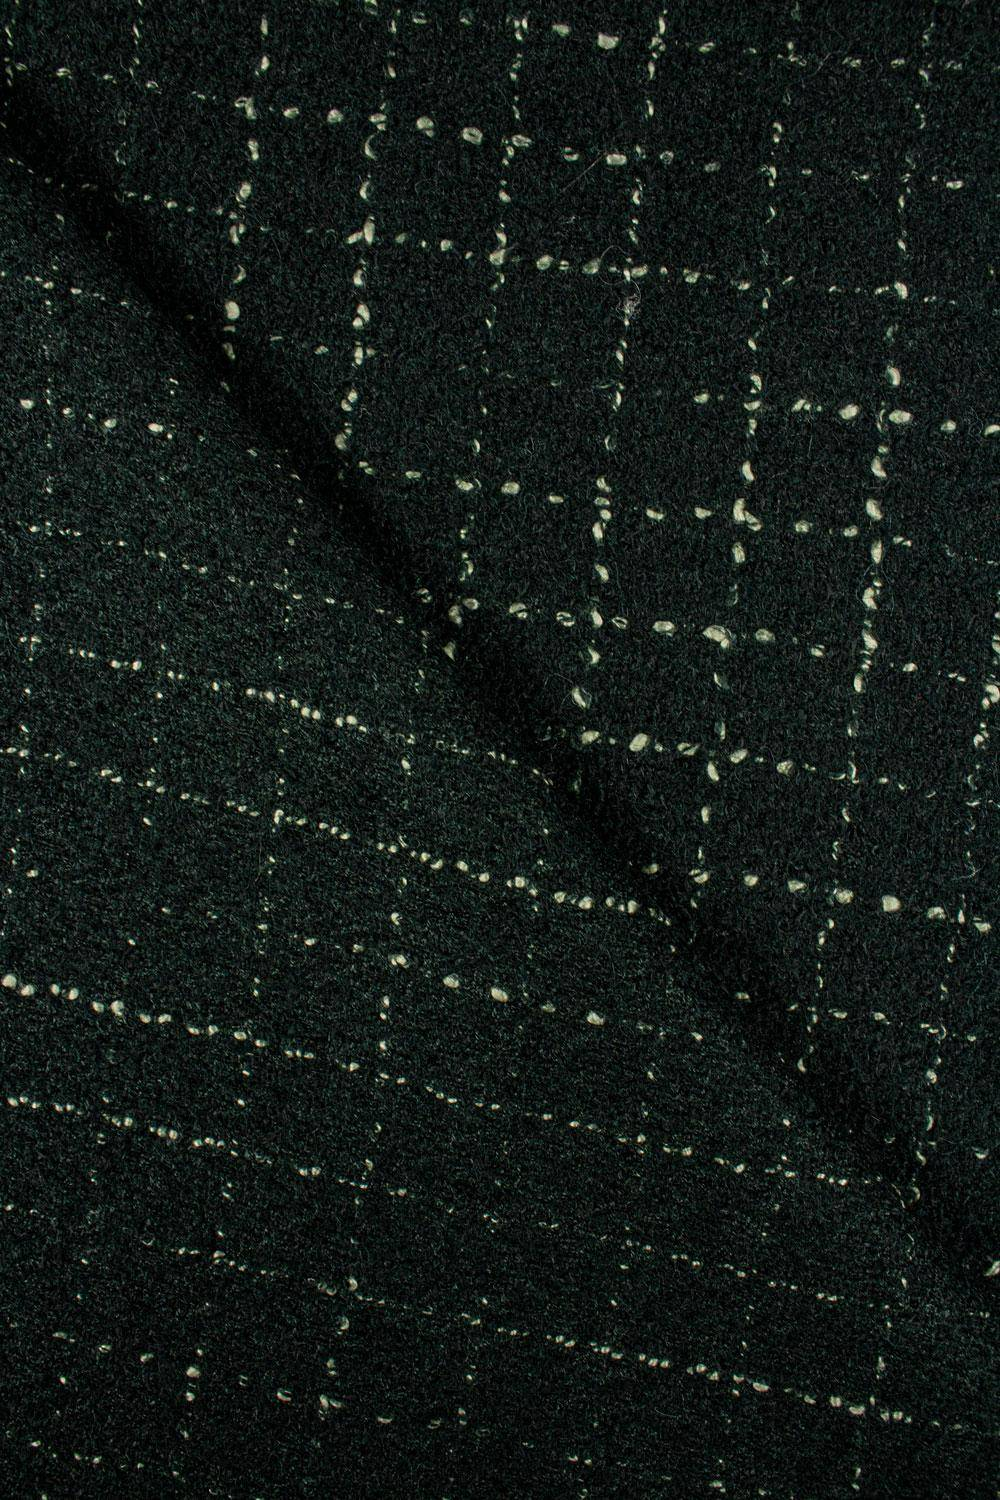 Fabric - Woolen - Dark Green With Delicate Checkered Pattern - 140 cm - 360 g/m2